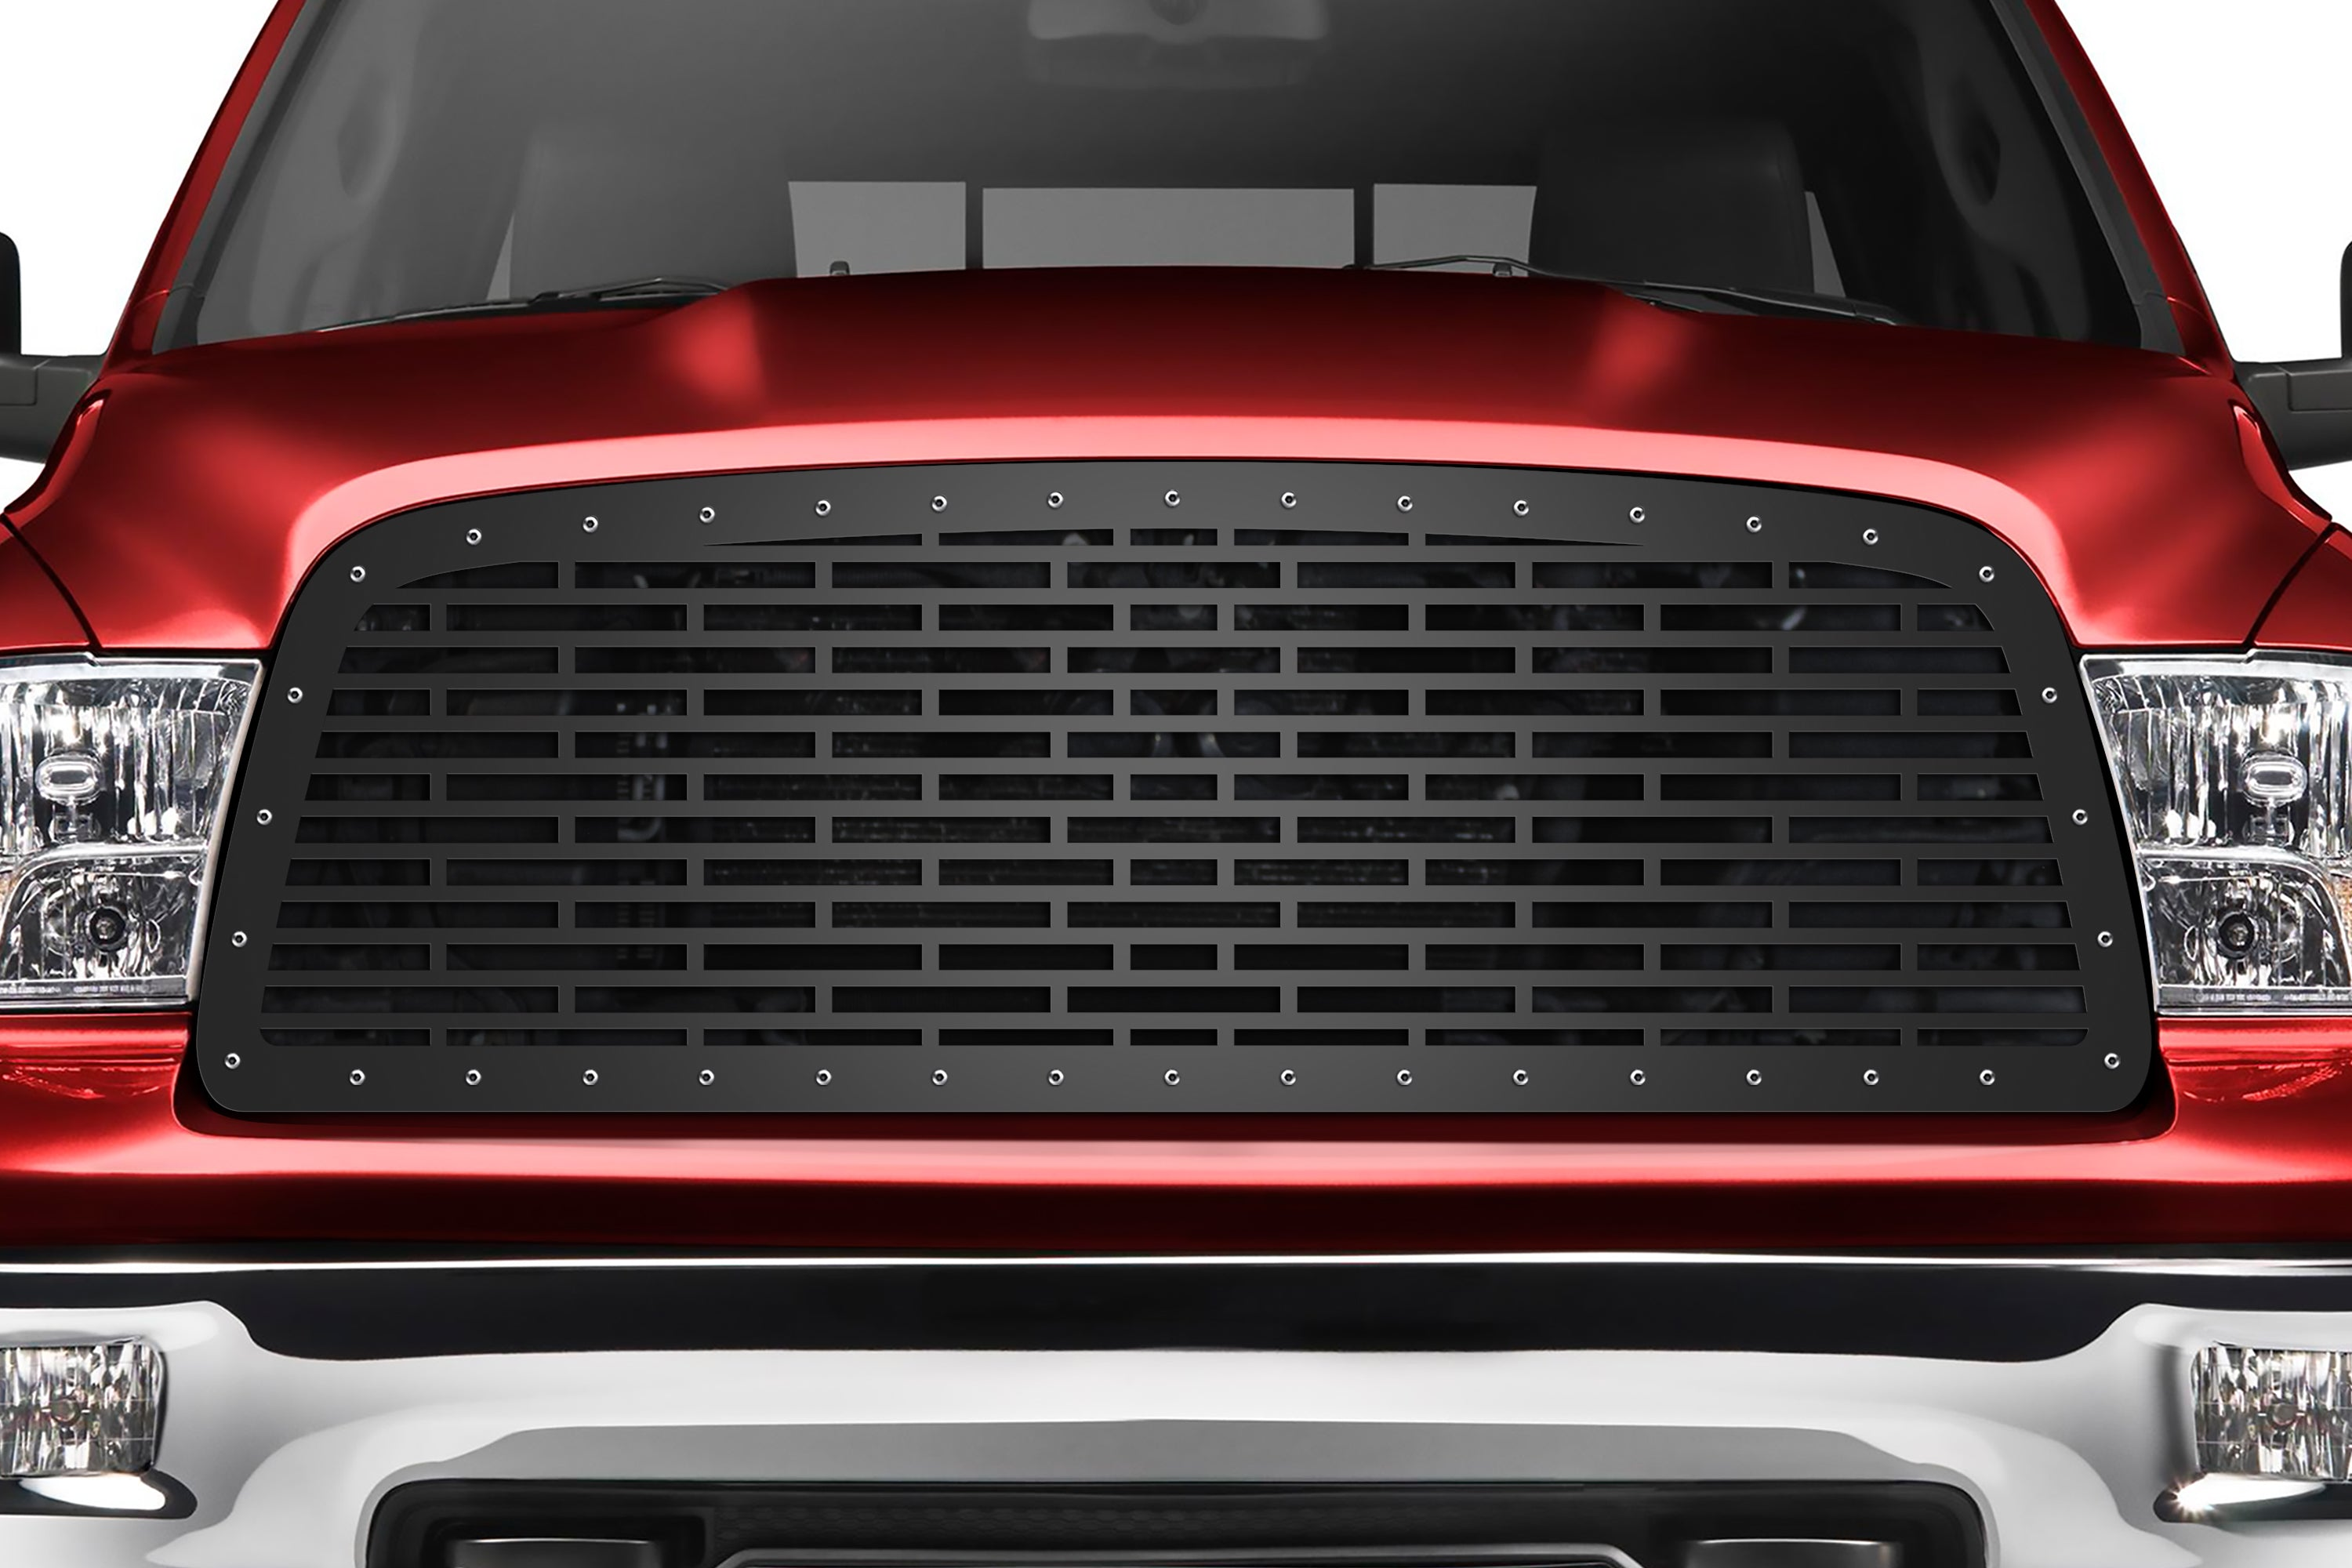 Steel Grille for Dodge Ram 1500 (2009-2012) and Ram 2500/3500 (2013-2018) - Bricks